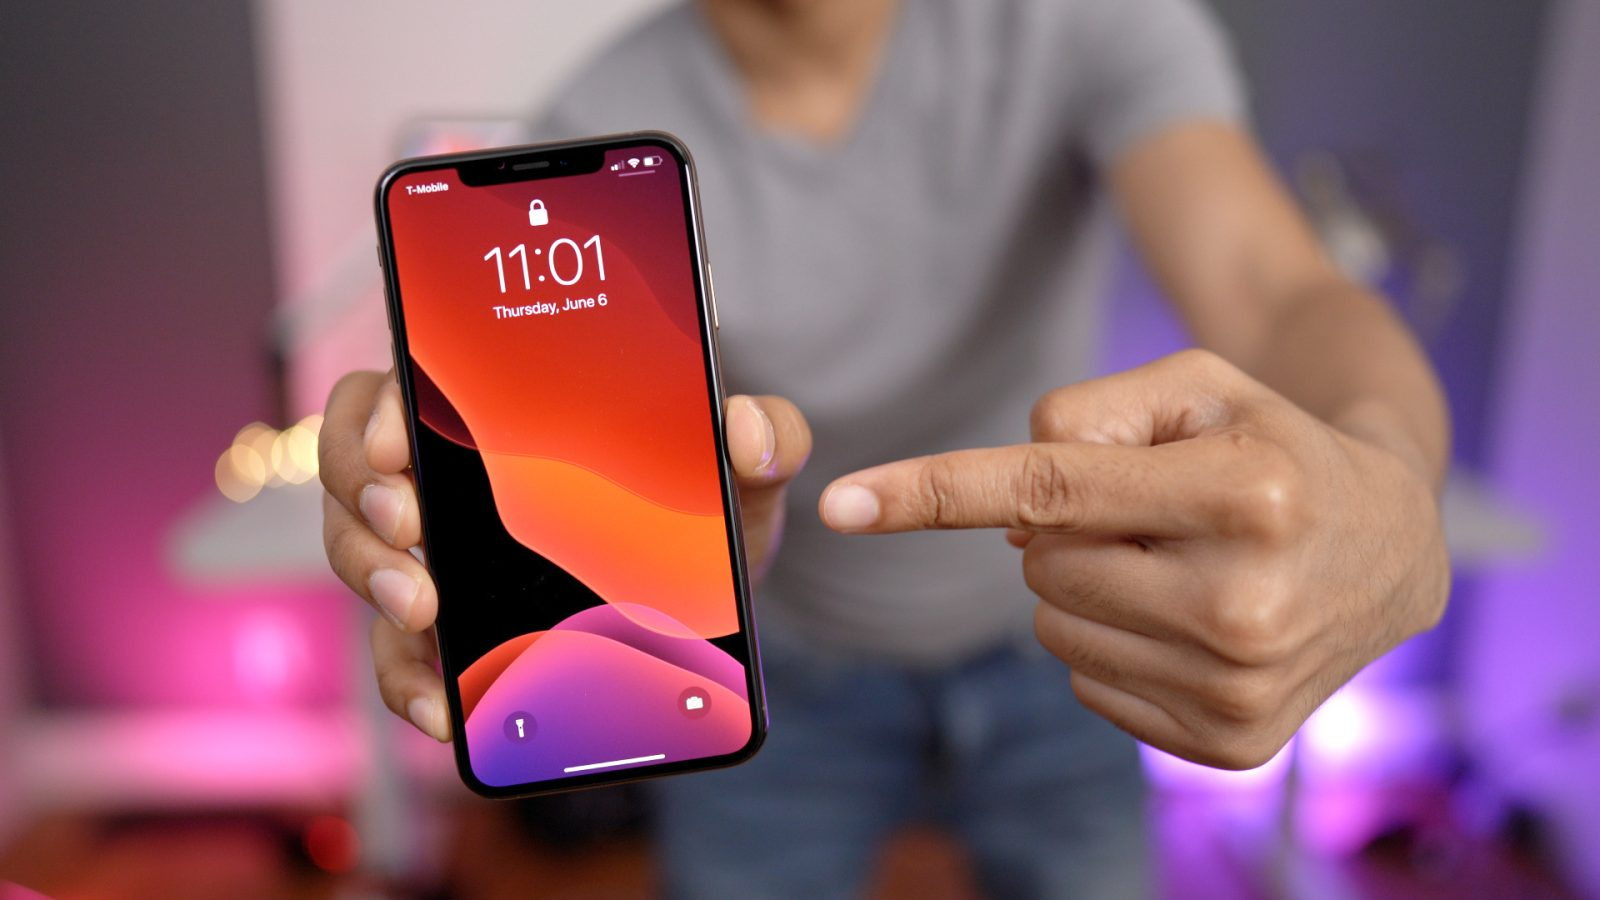 Hands-on with 200+ iOS 13 changes and features [Video]